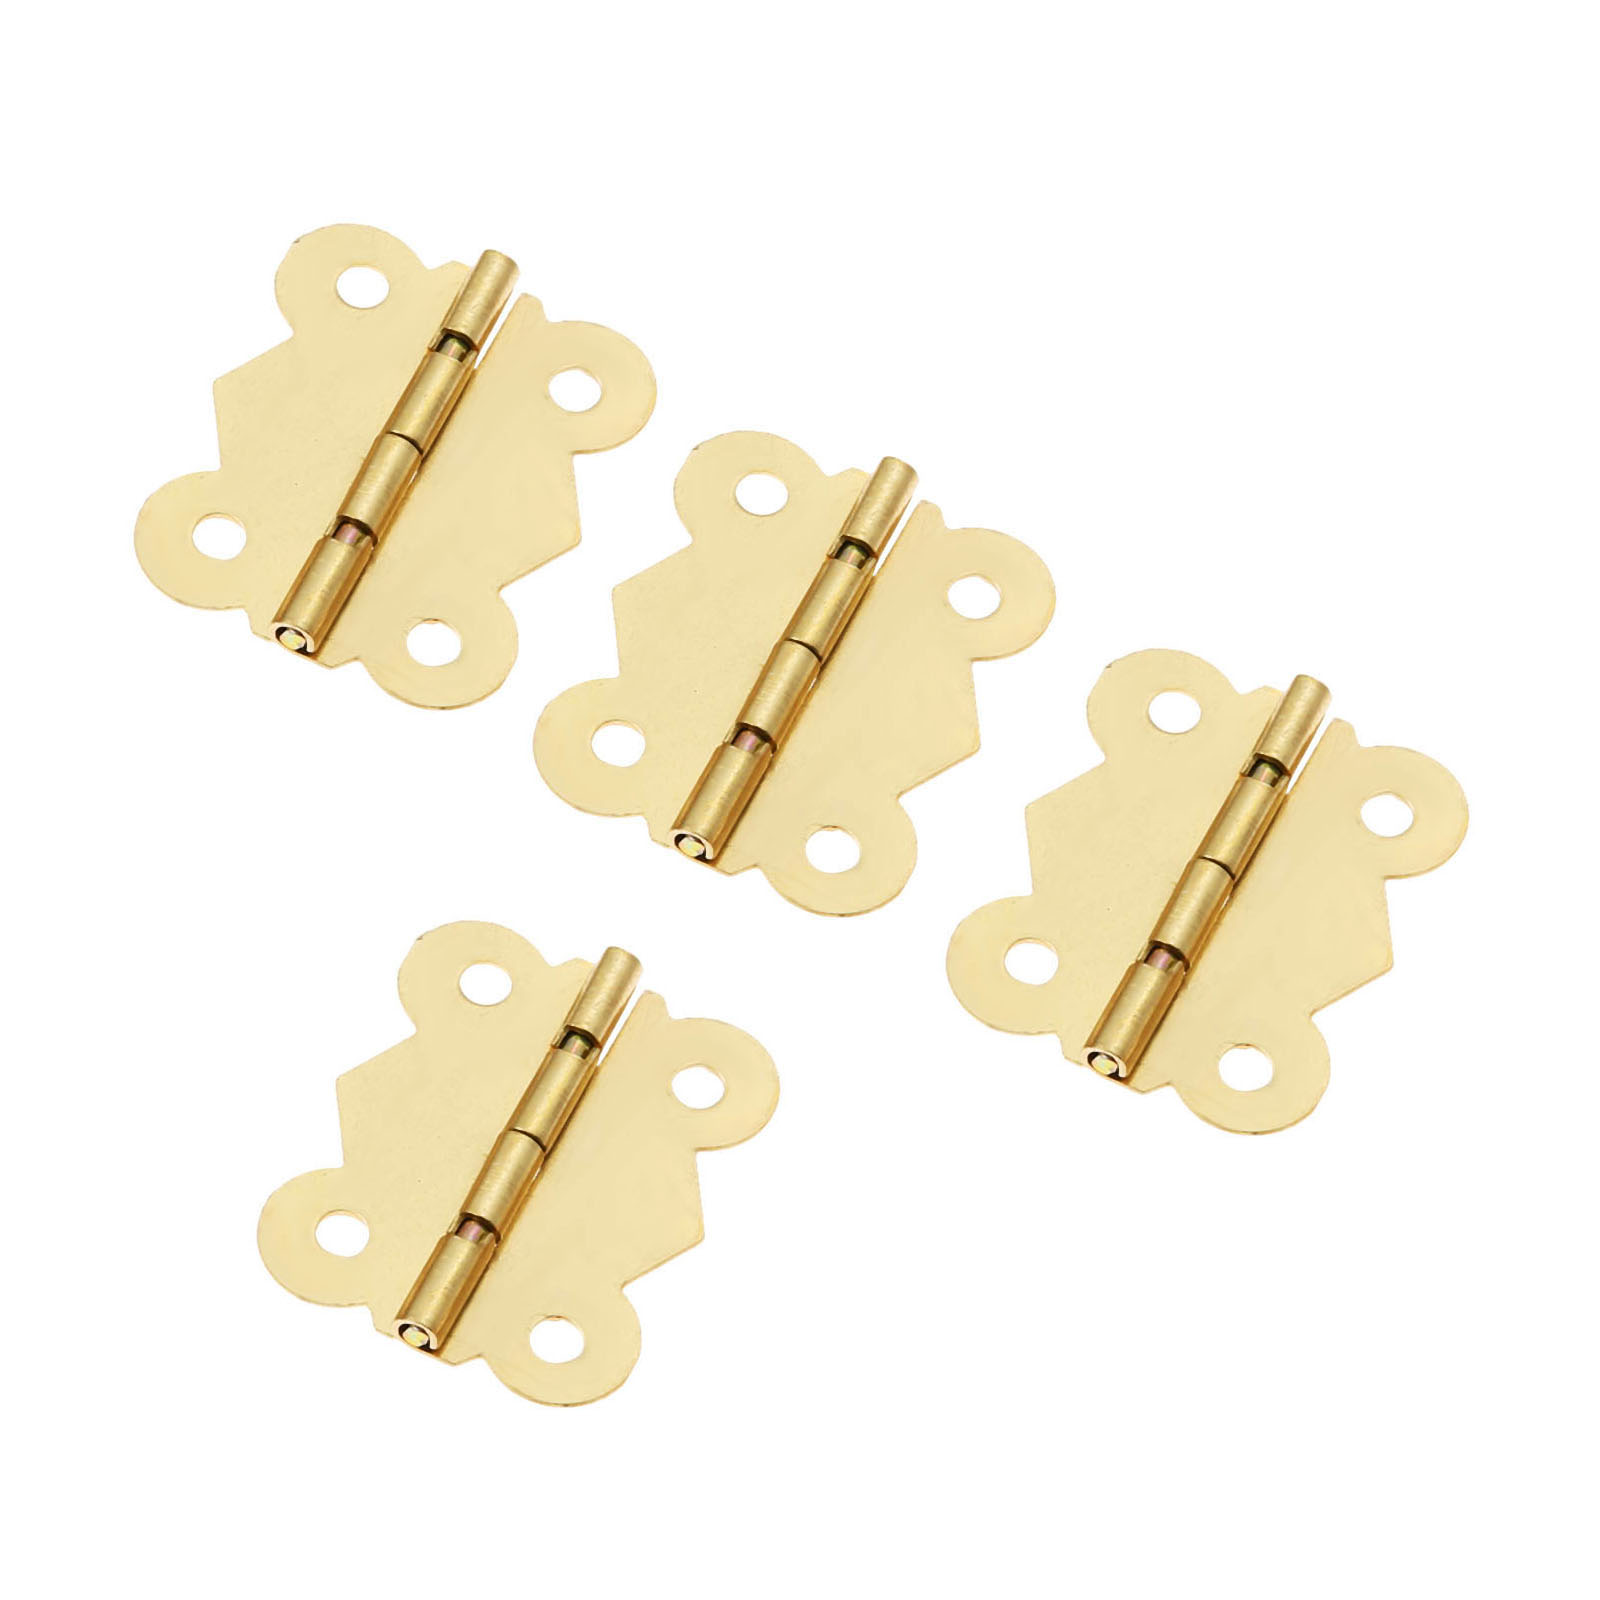 4Pcs 40x33mm Butterfly Door Furniture Hinge 4 Holes Cabinet Drawer Jewelry Box Decorative Hinge Furniture Hardware with Screws in Cabinet Hinges from Home Improvement